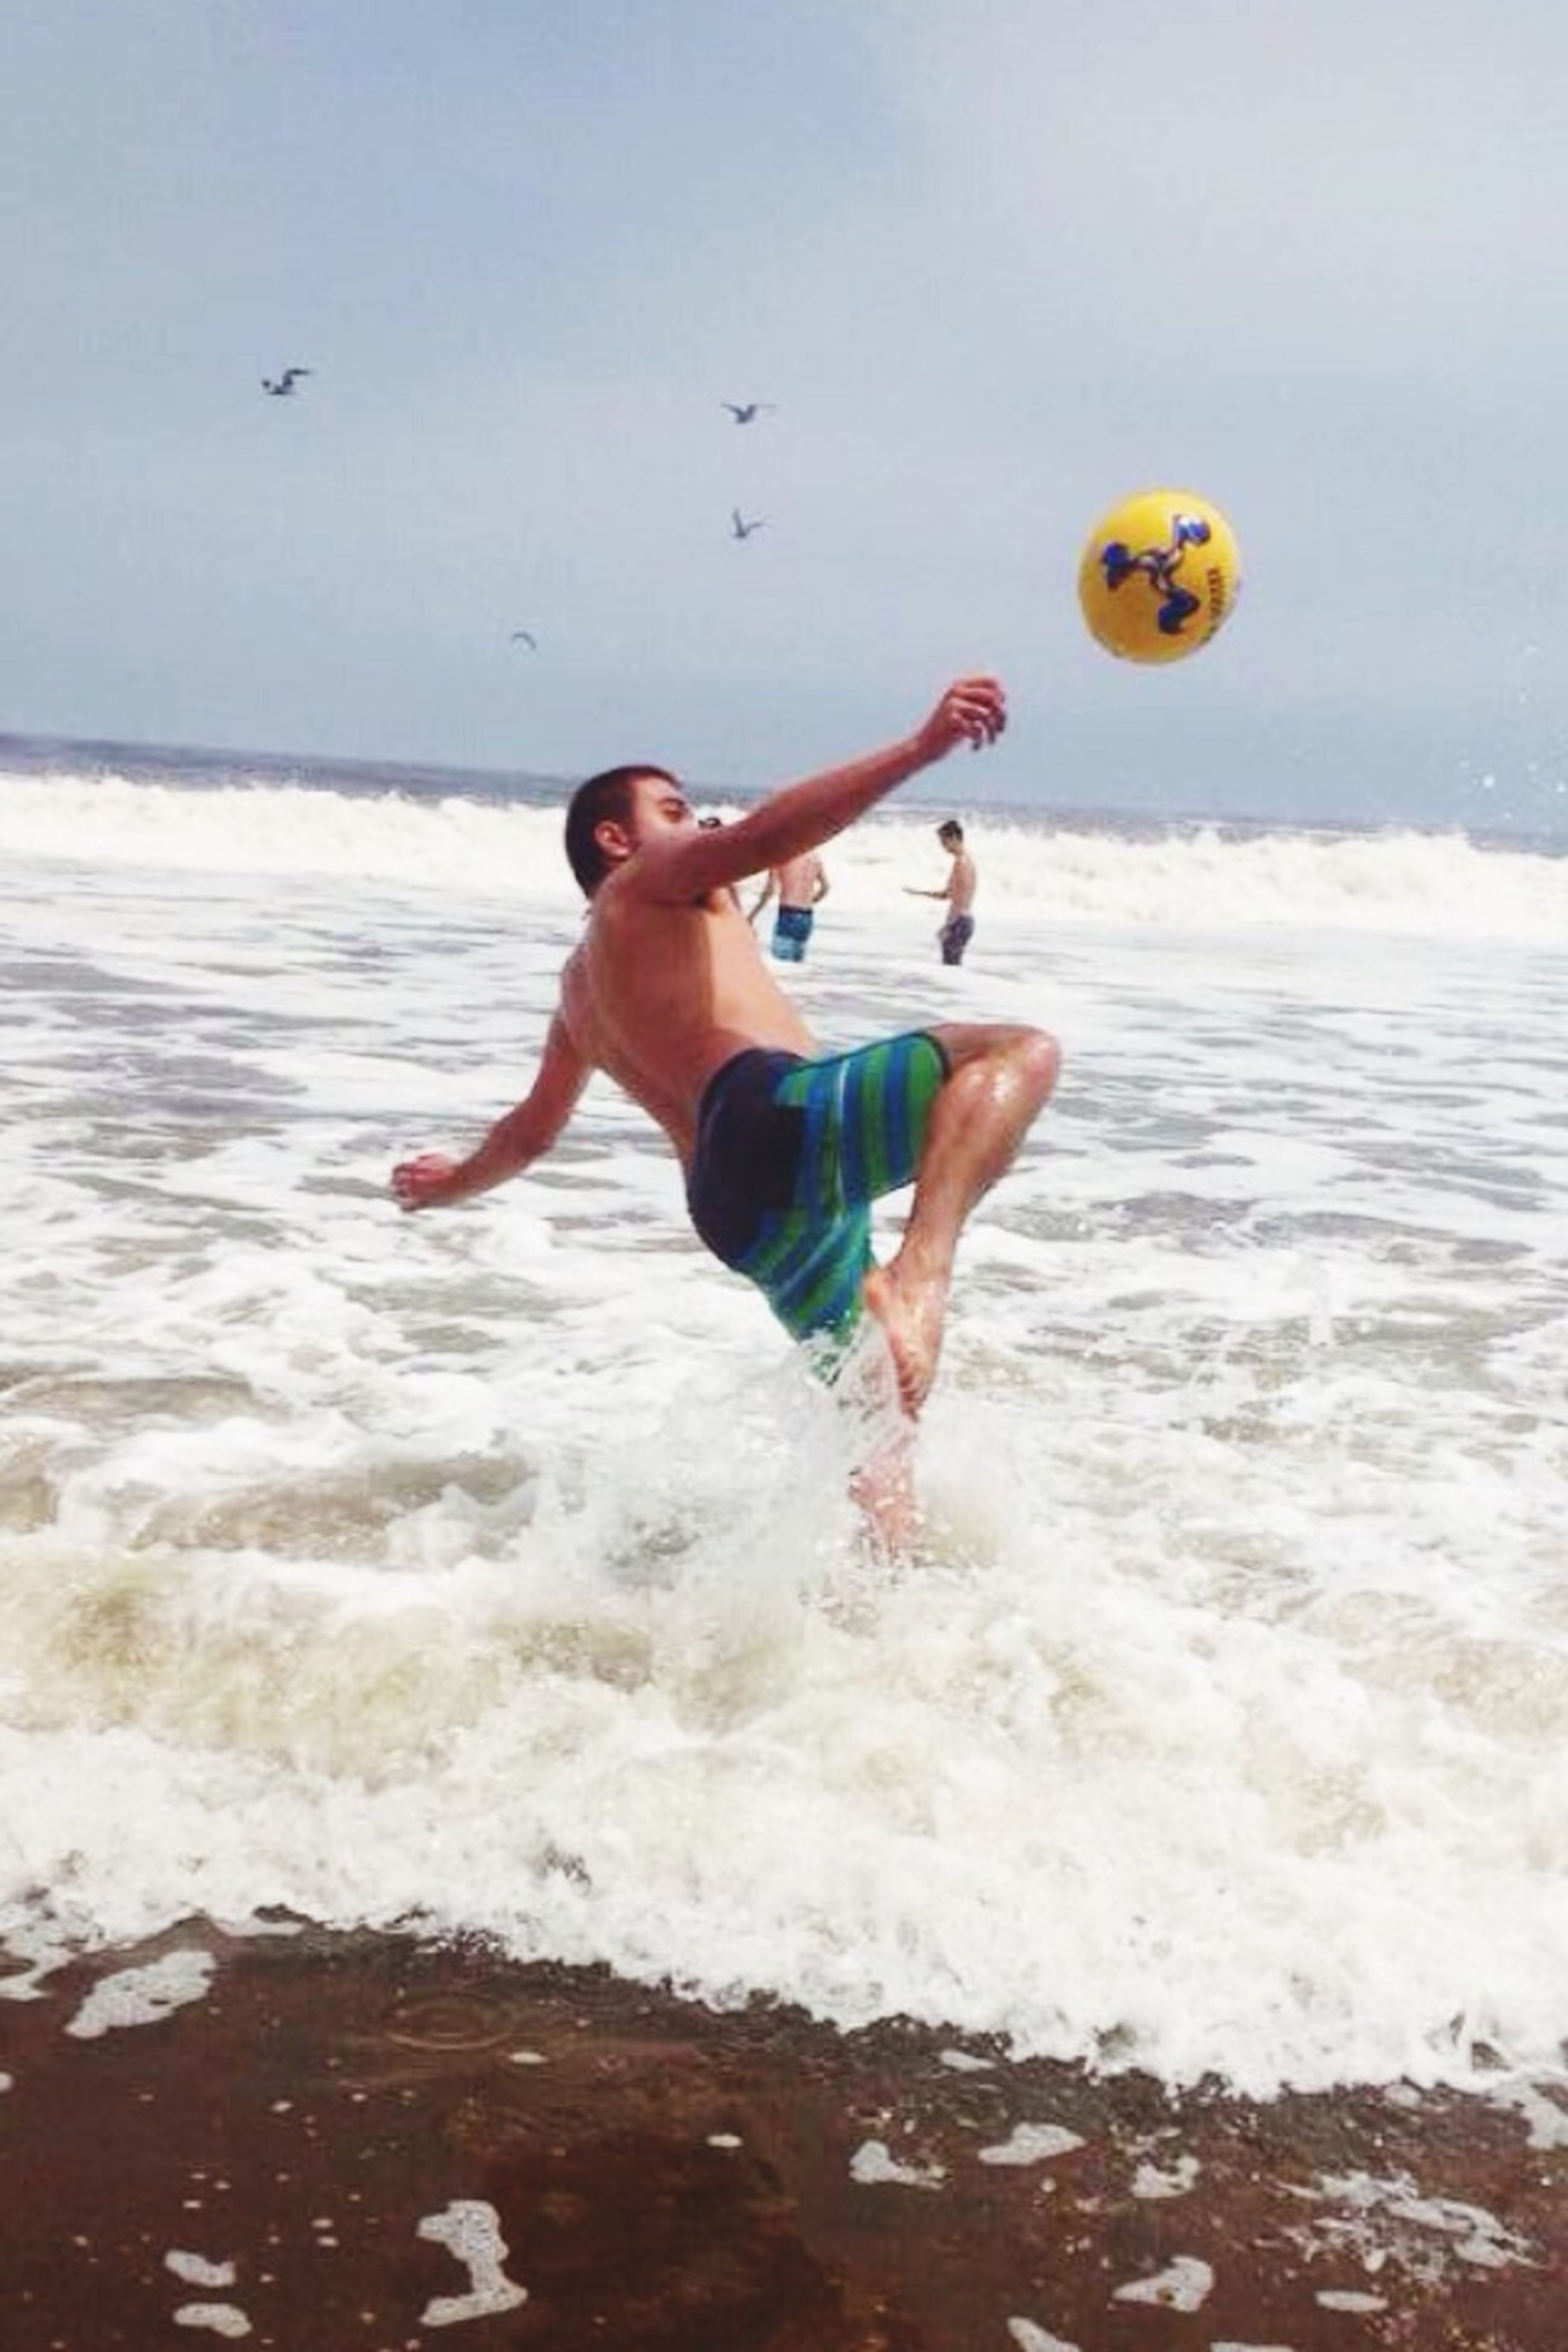 leisure activity, lifestyles, water, sea, full length, enjoyment, beach, fun, vacations, mid-air, jumping, shore, shirtless, childhood, motion, playing, wave, playful